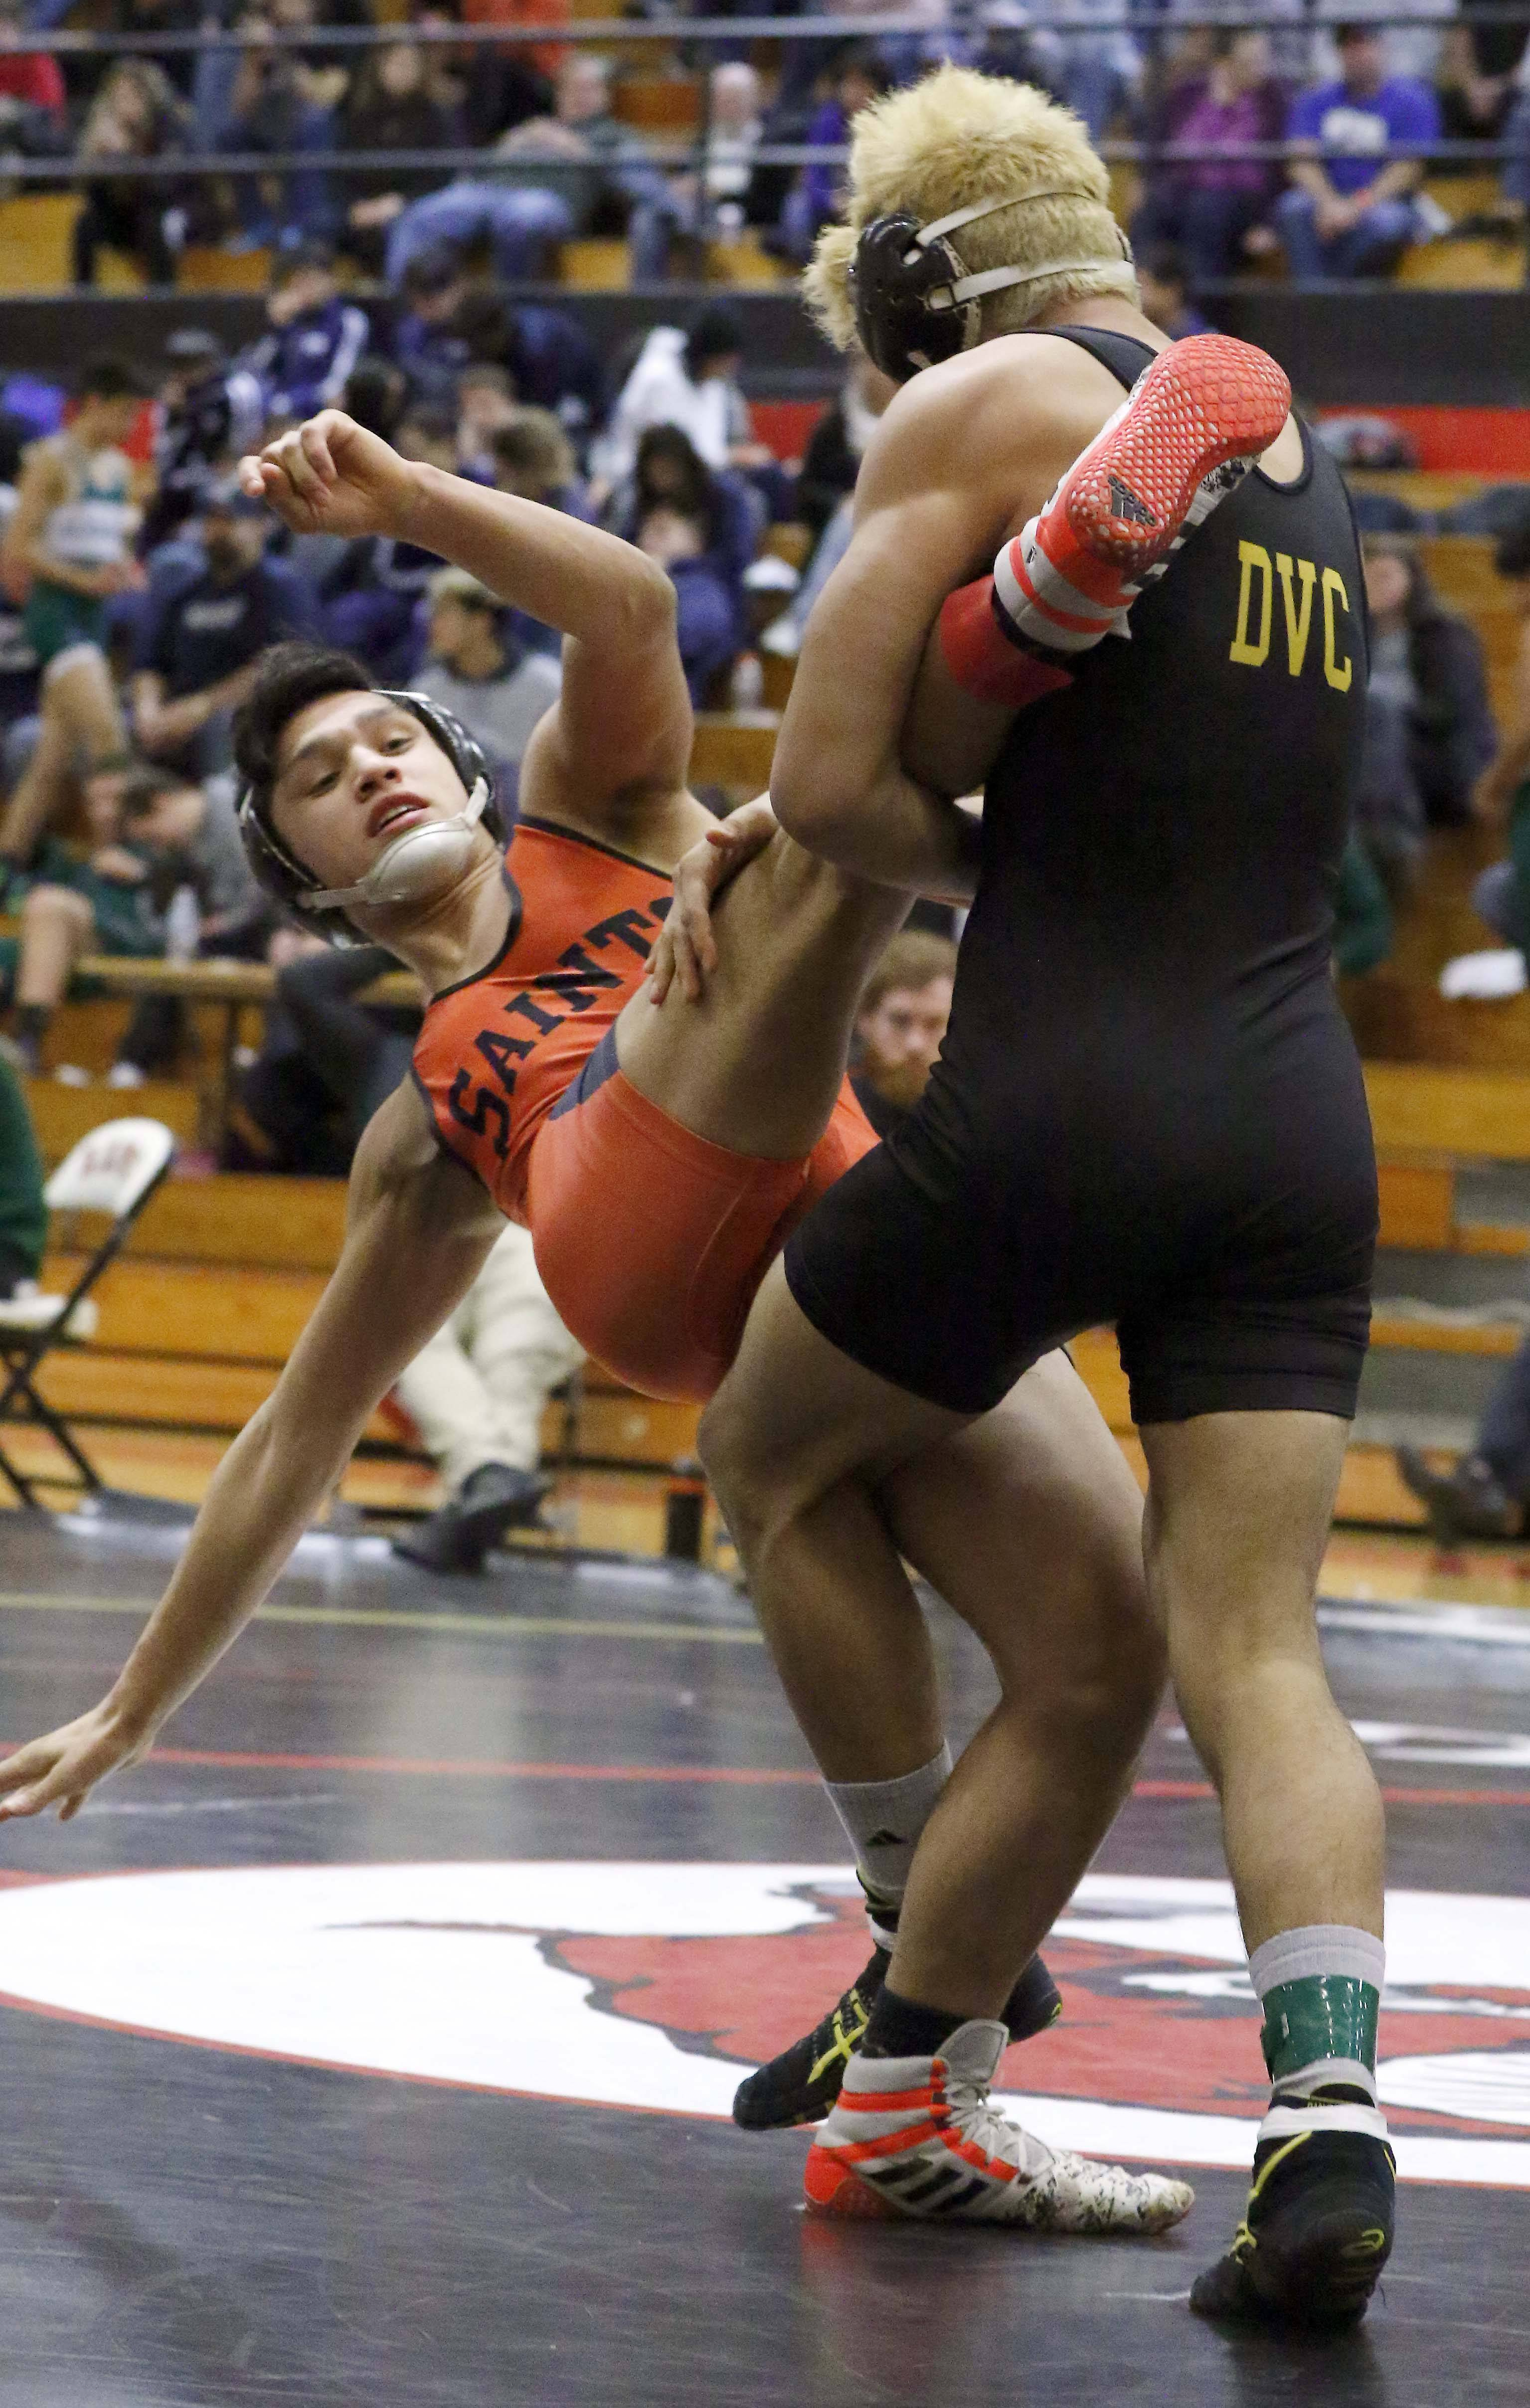 St. Charles East's Niko Derain wrestles Glenbard North's Juan Rivera at 138 pounds Saturday during the Class 3A Glenbard East wrestling regional in Lombard.